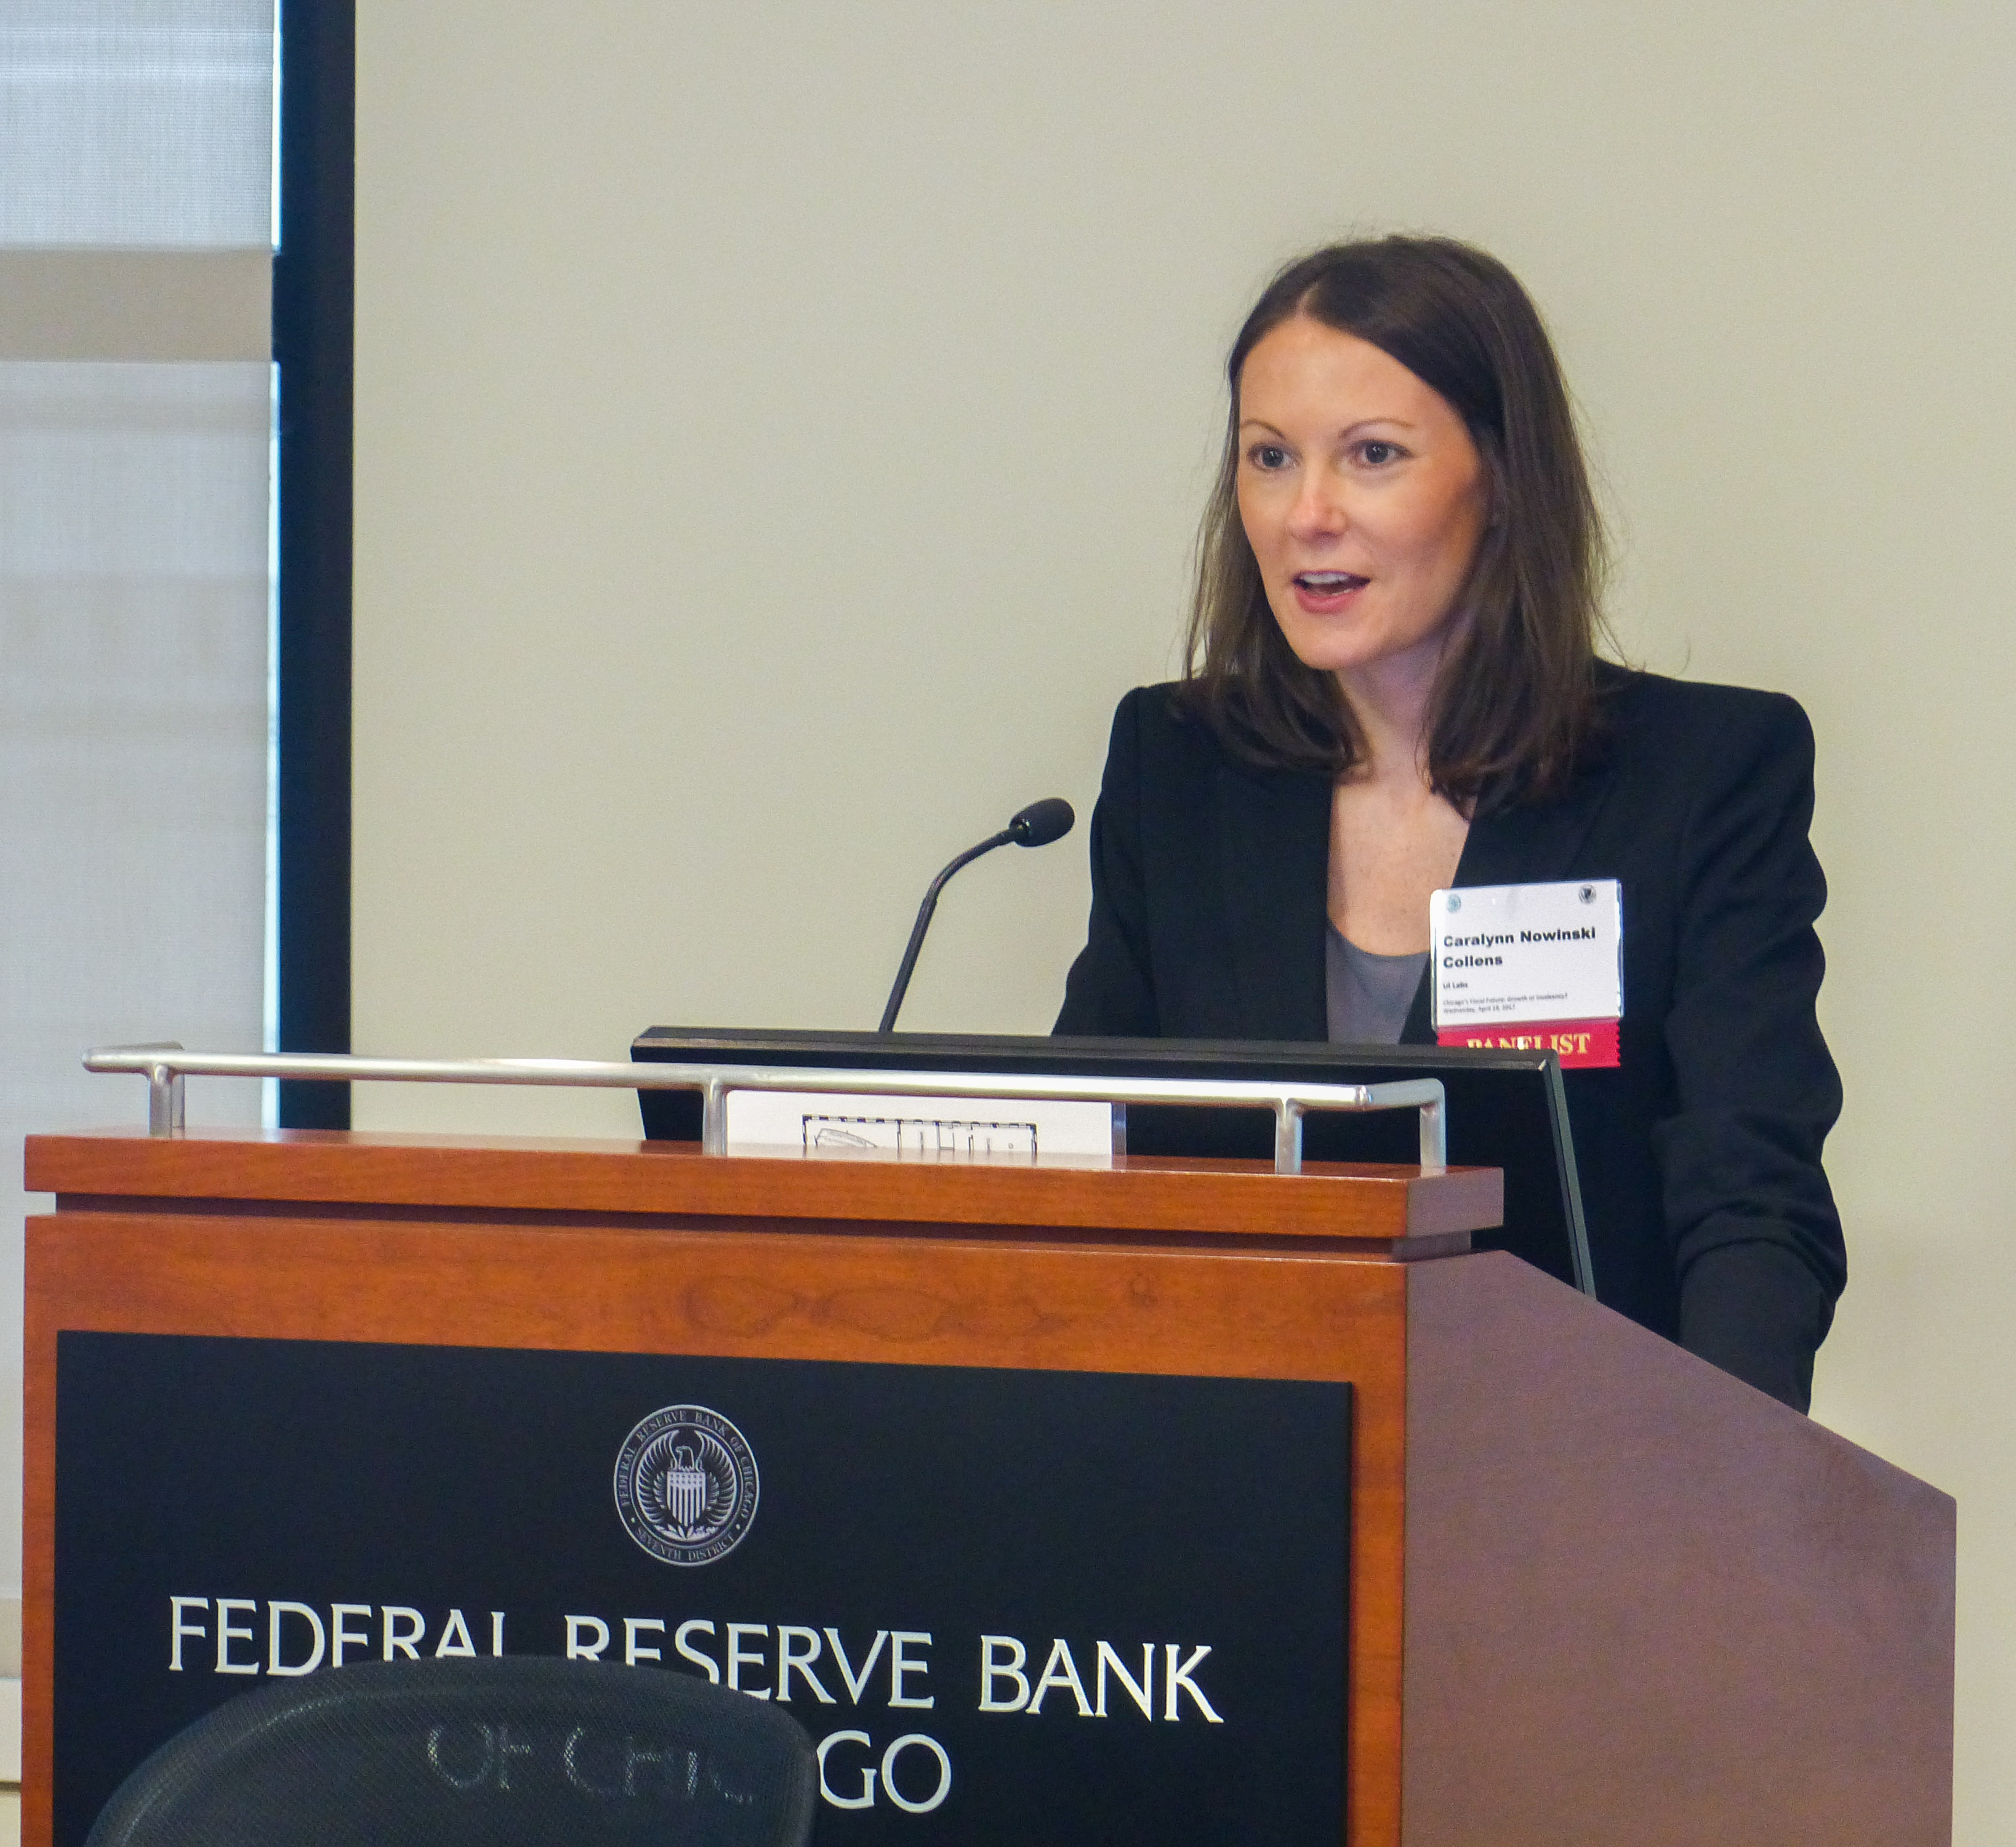 Caralynn Nowinski Collens, Federal Reserve Bank of Chicago, Civic Federation